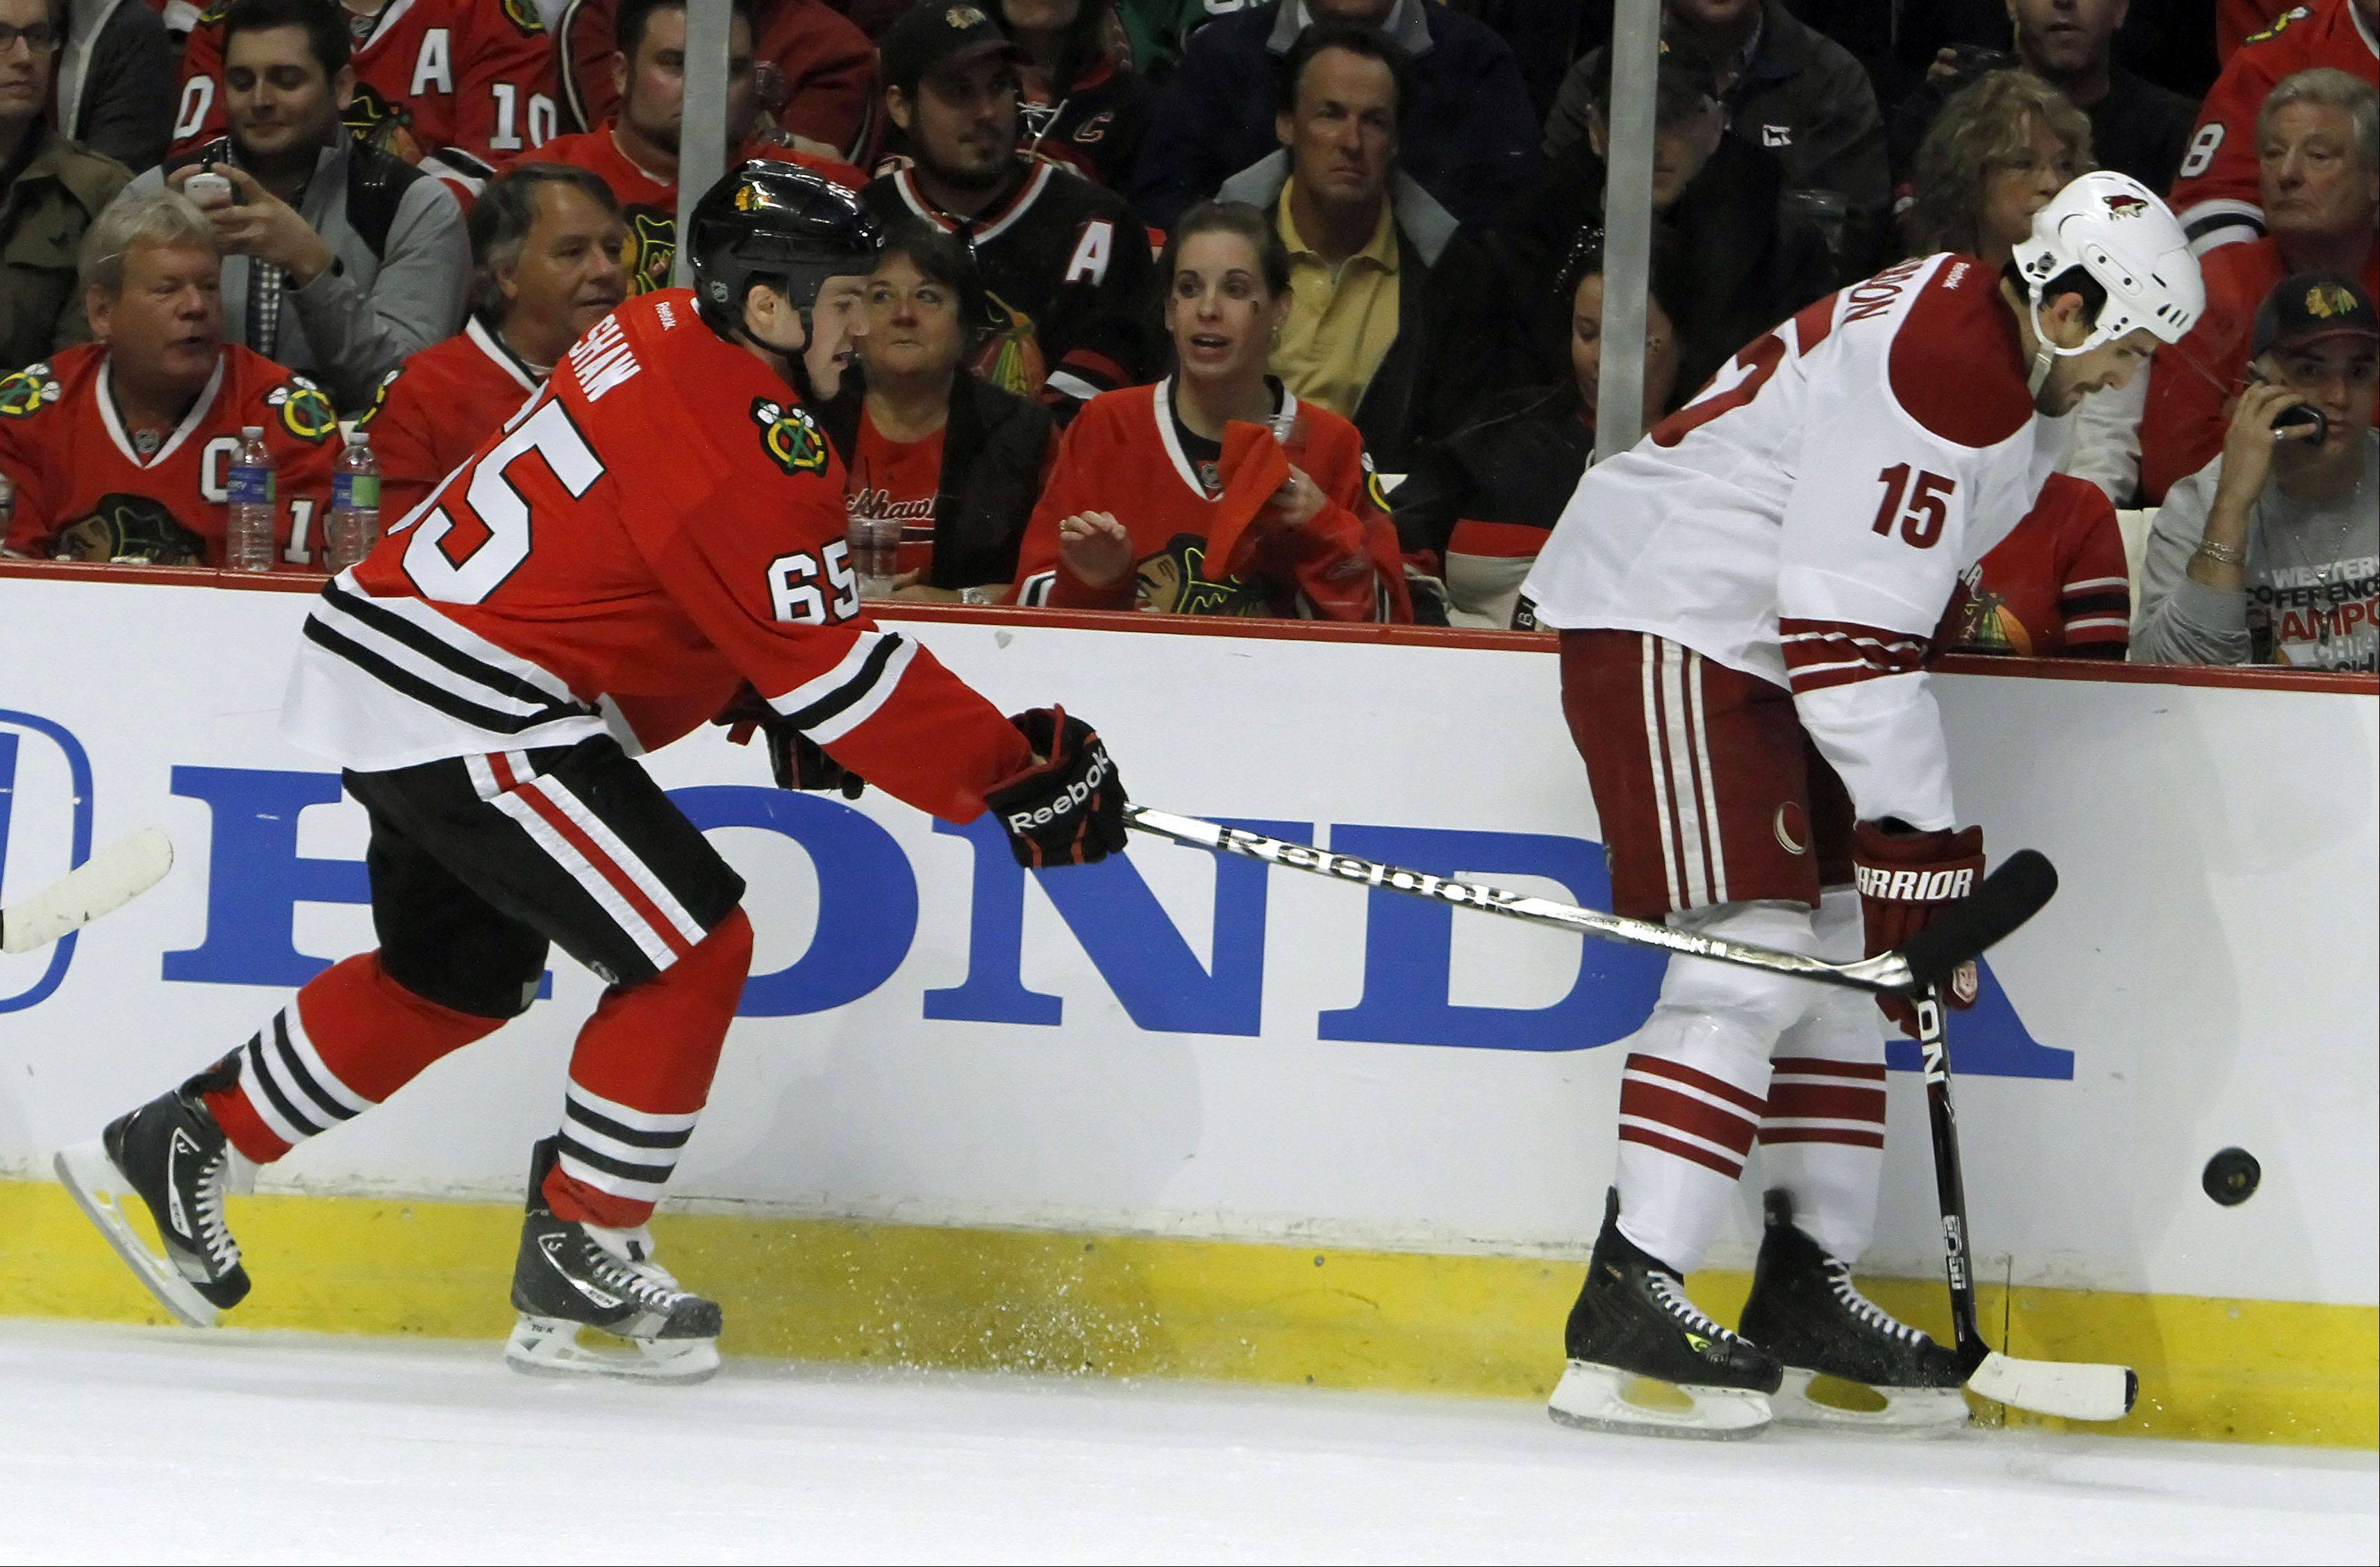 Chicago Blackhawks' center Andrew Shaw battles for the puck with Phoenix Coyotes' center Boyd Gordon .